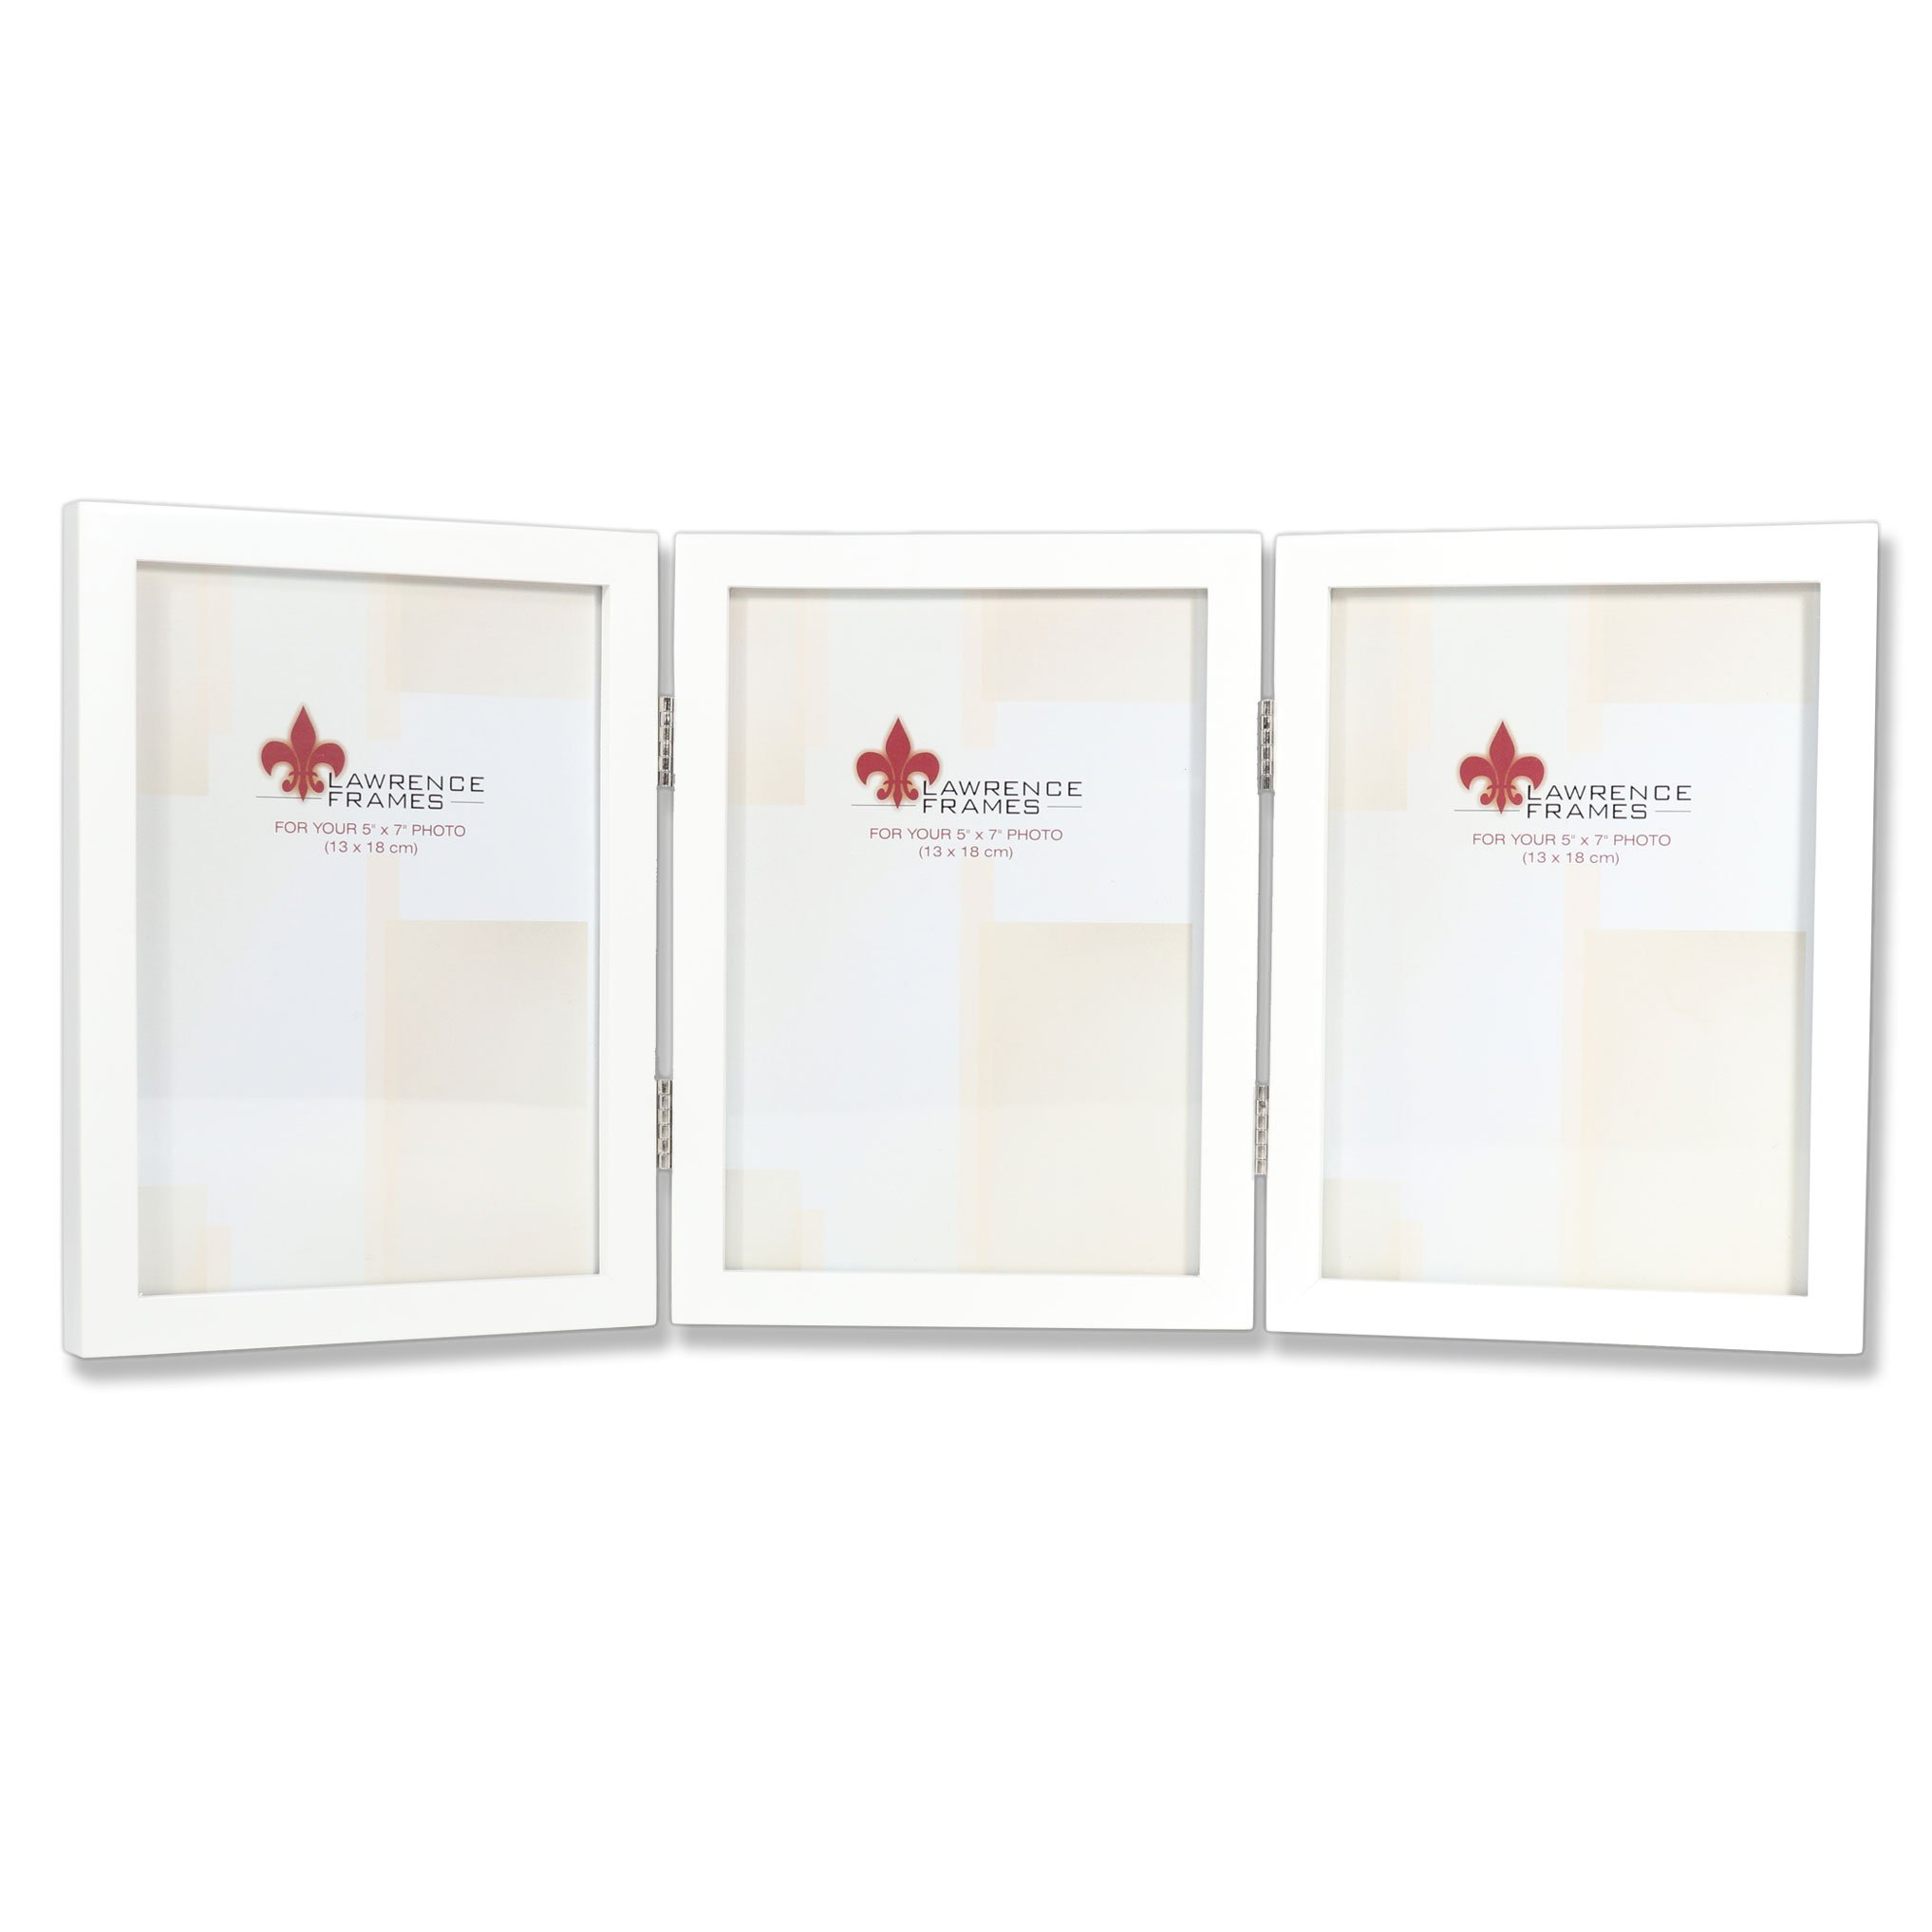 Lawrence Frames Hinged Triple White Wood Picture Frame, Gallery Collection, 5 by 7-Inch by Lawrence Frames